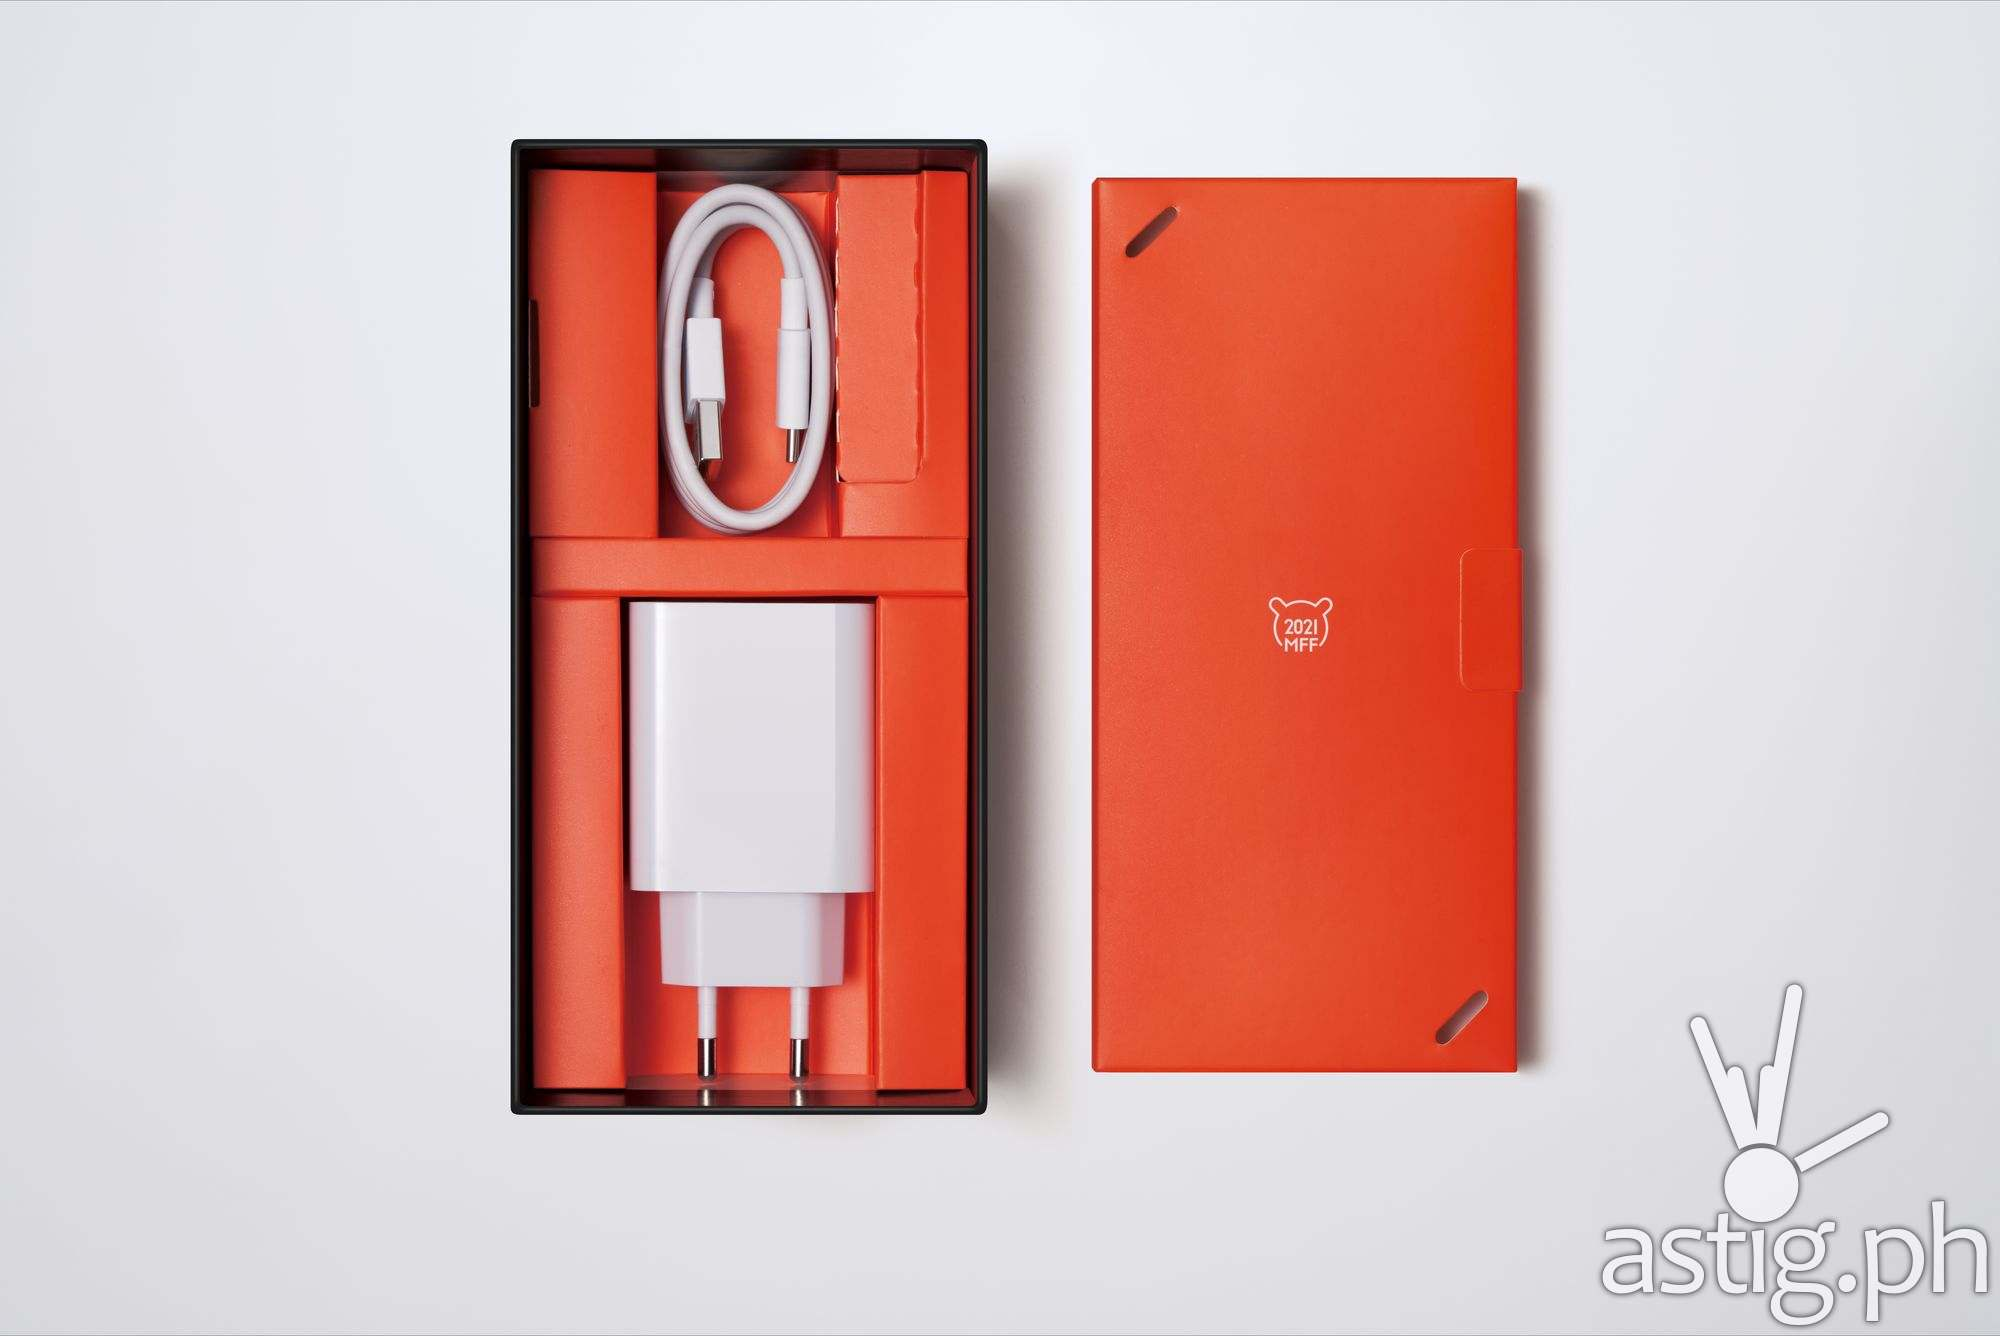 Power adapter & cable - Redmi Note 10 Pro Mi Fan Festival Special Edition